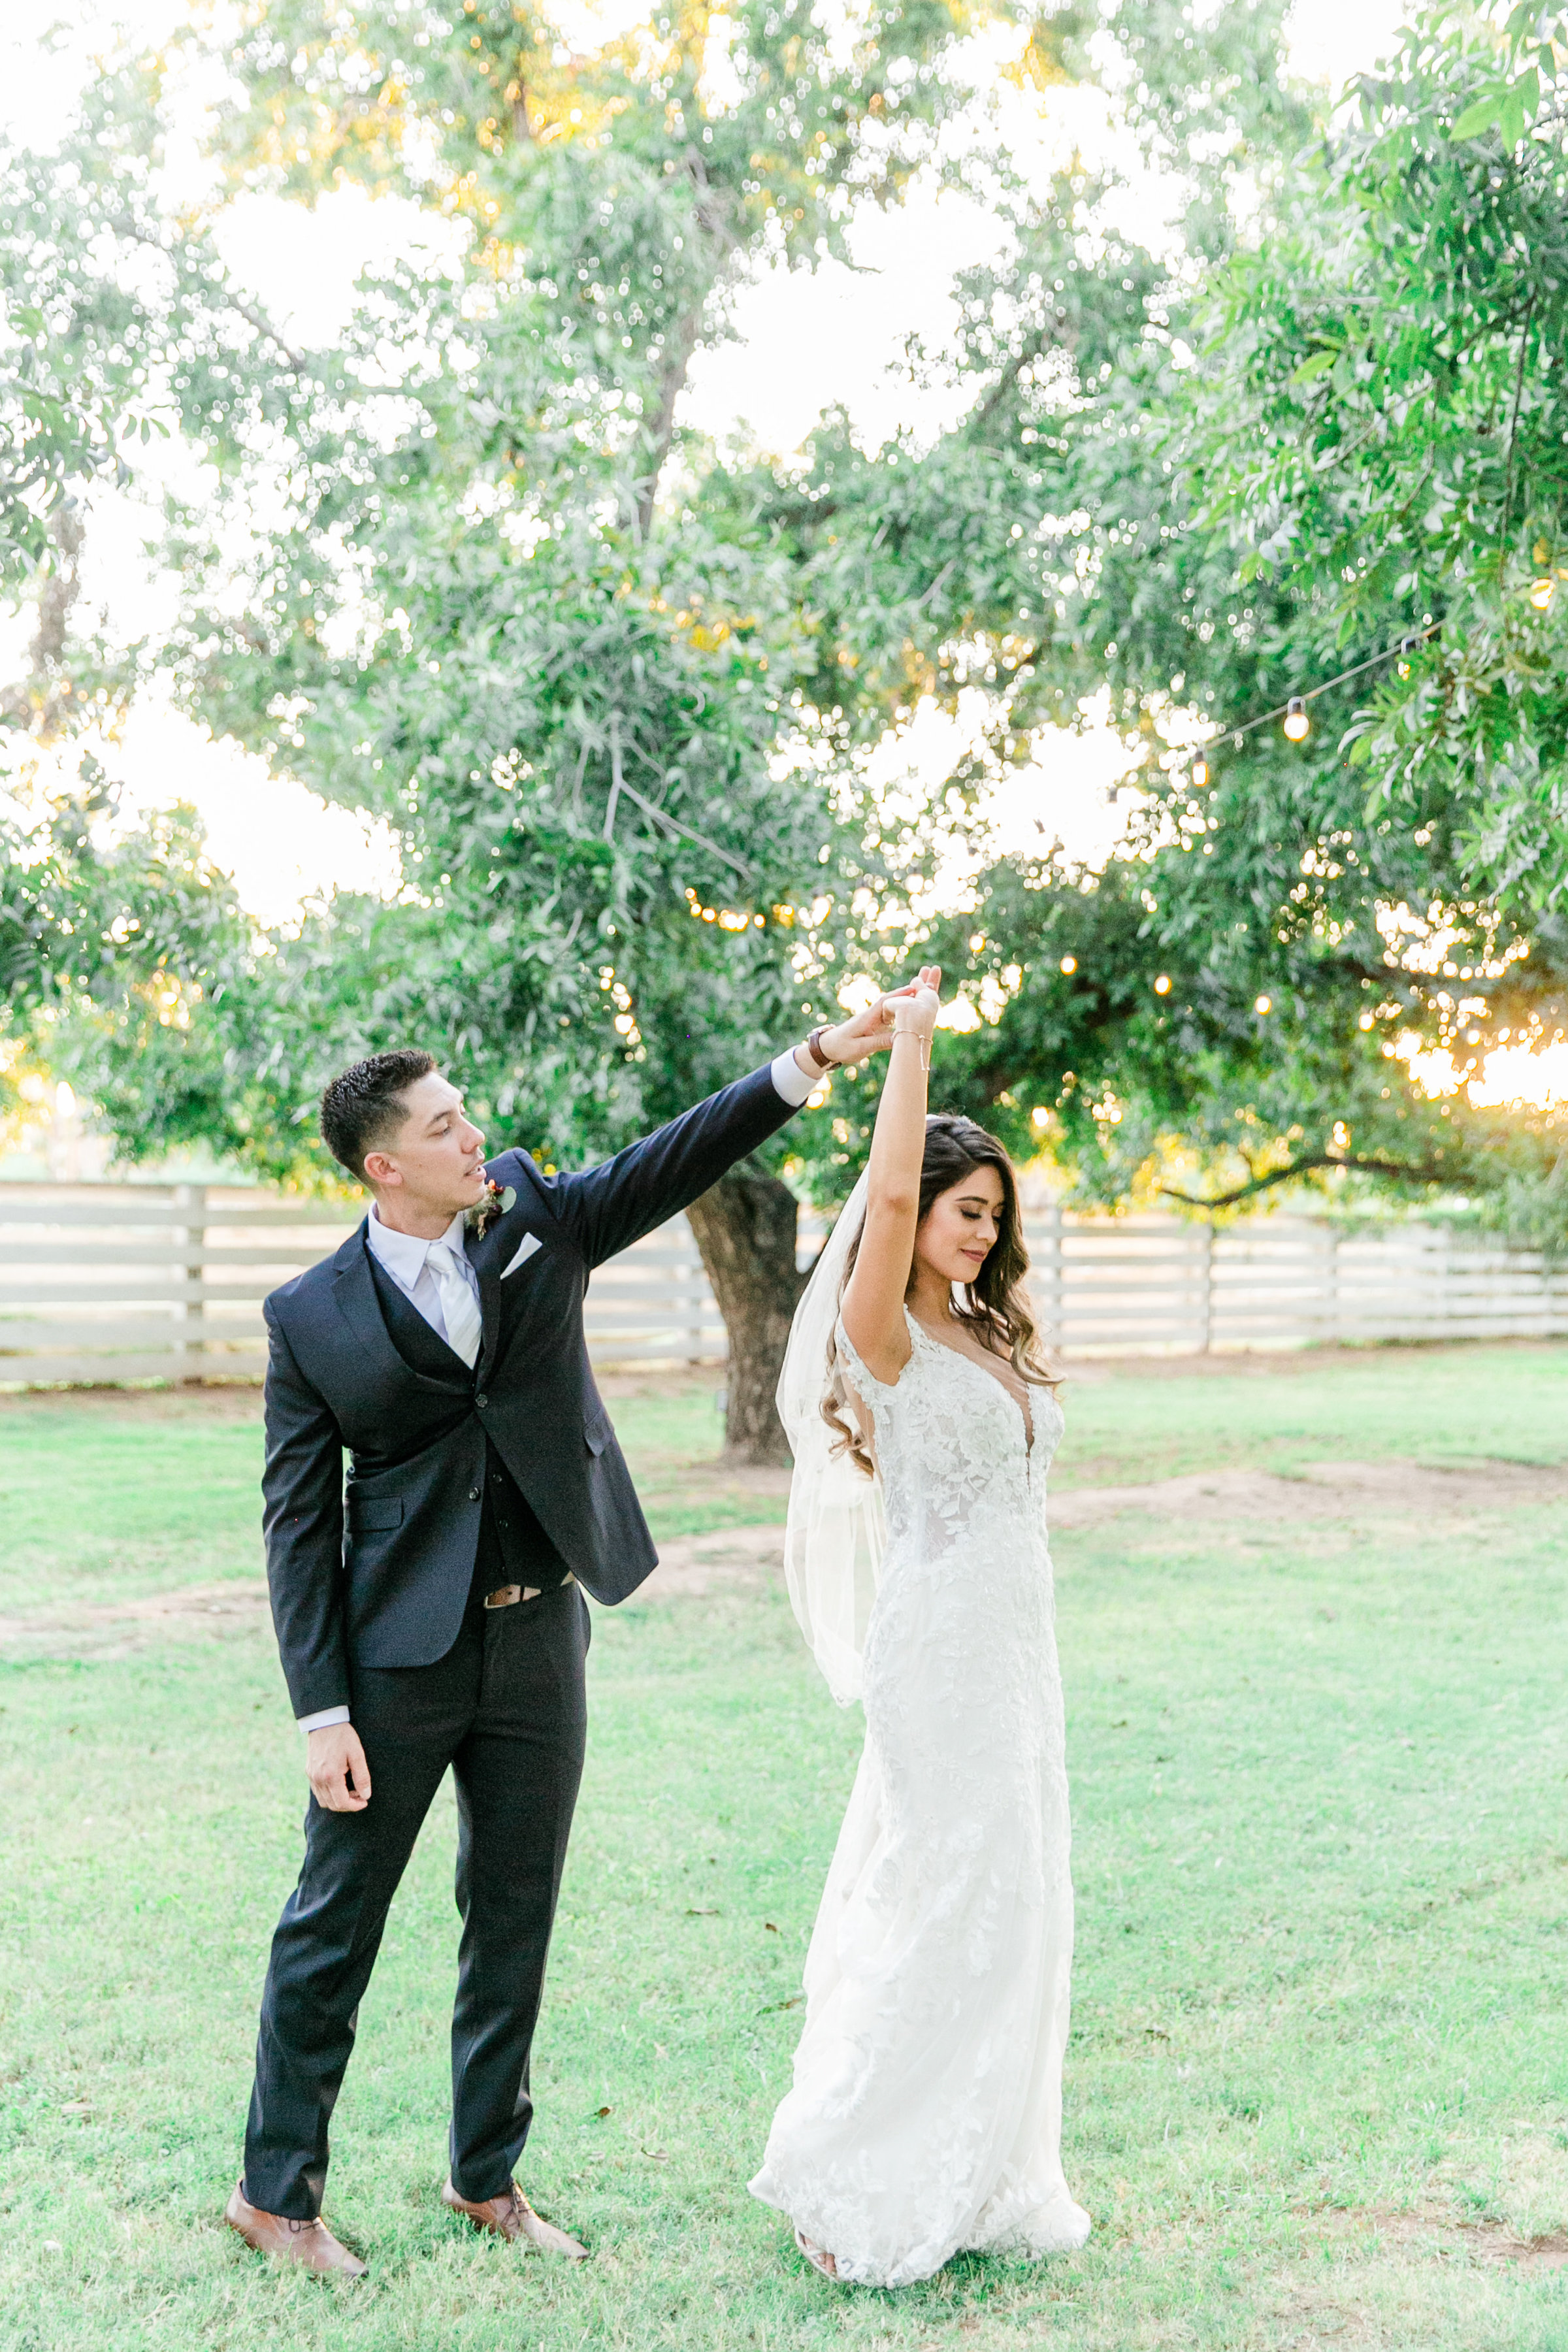 Karlie Colleen Photography - Phoenix Arizona - Farm At South Mountain Venue - Vanessa & Robert-612